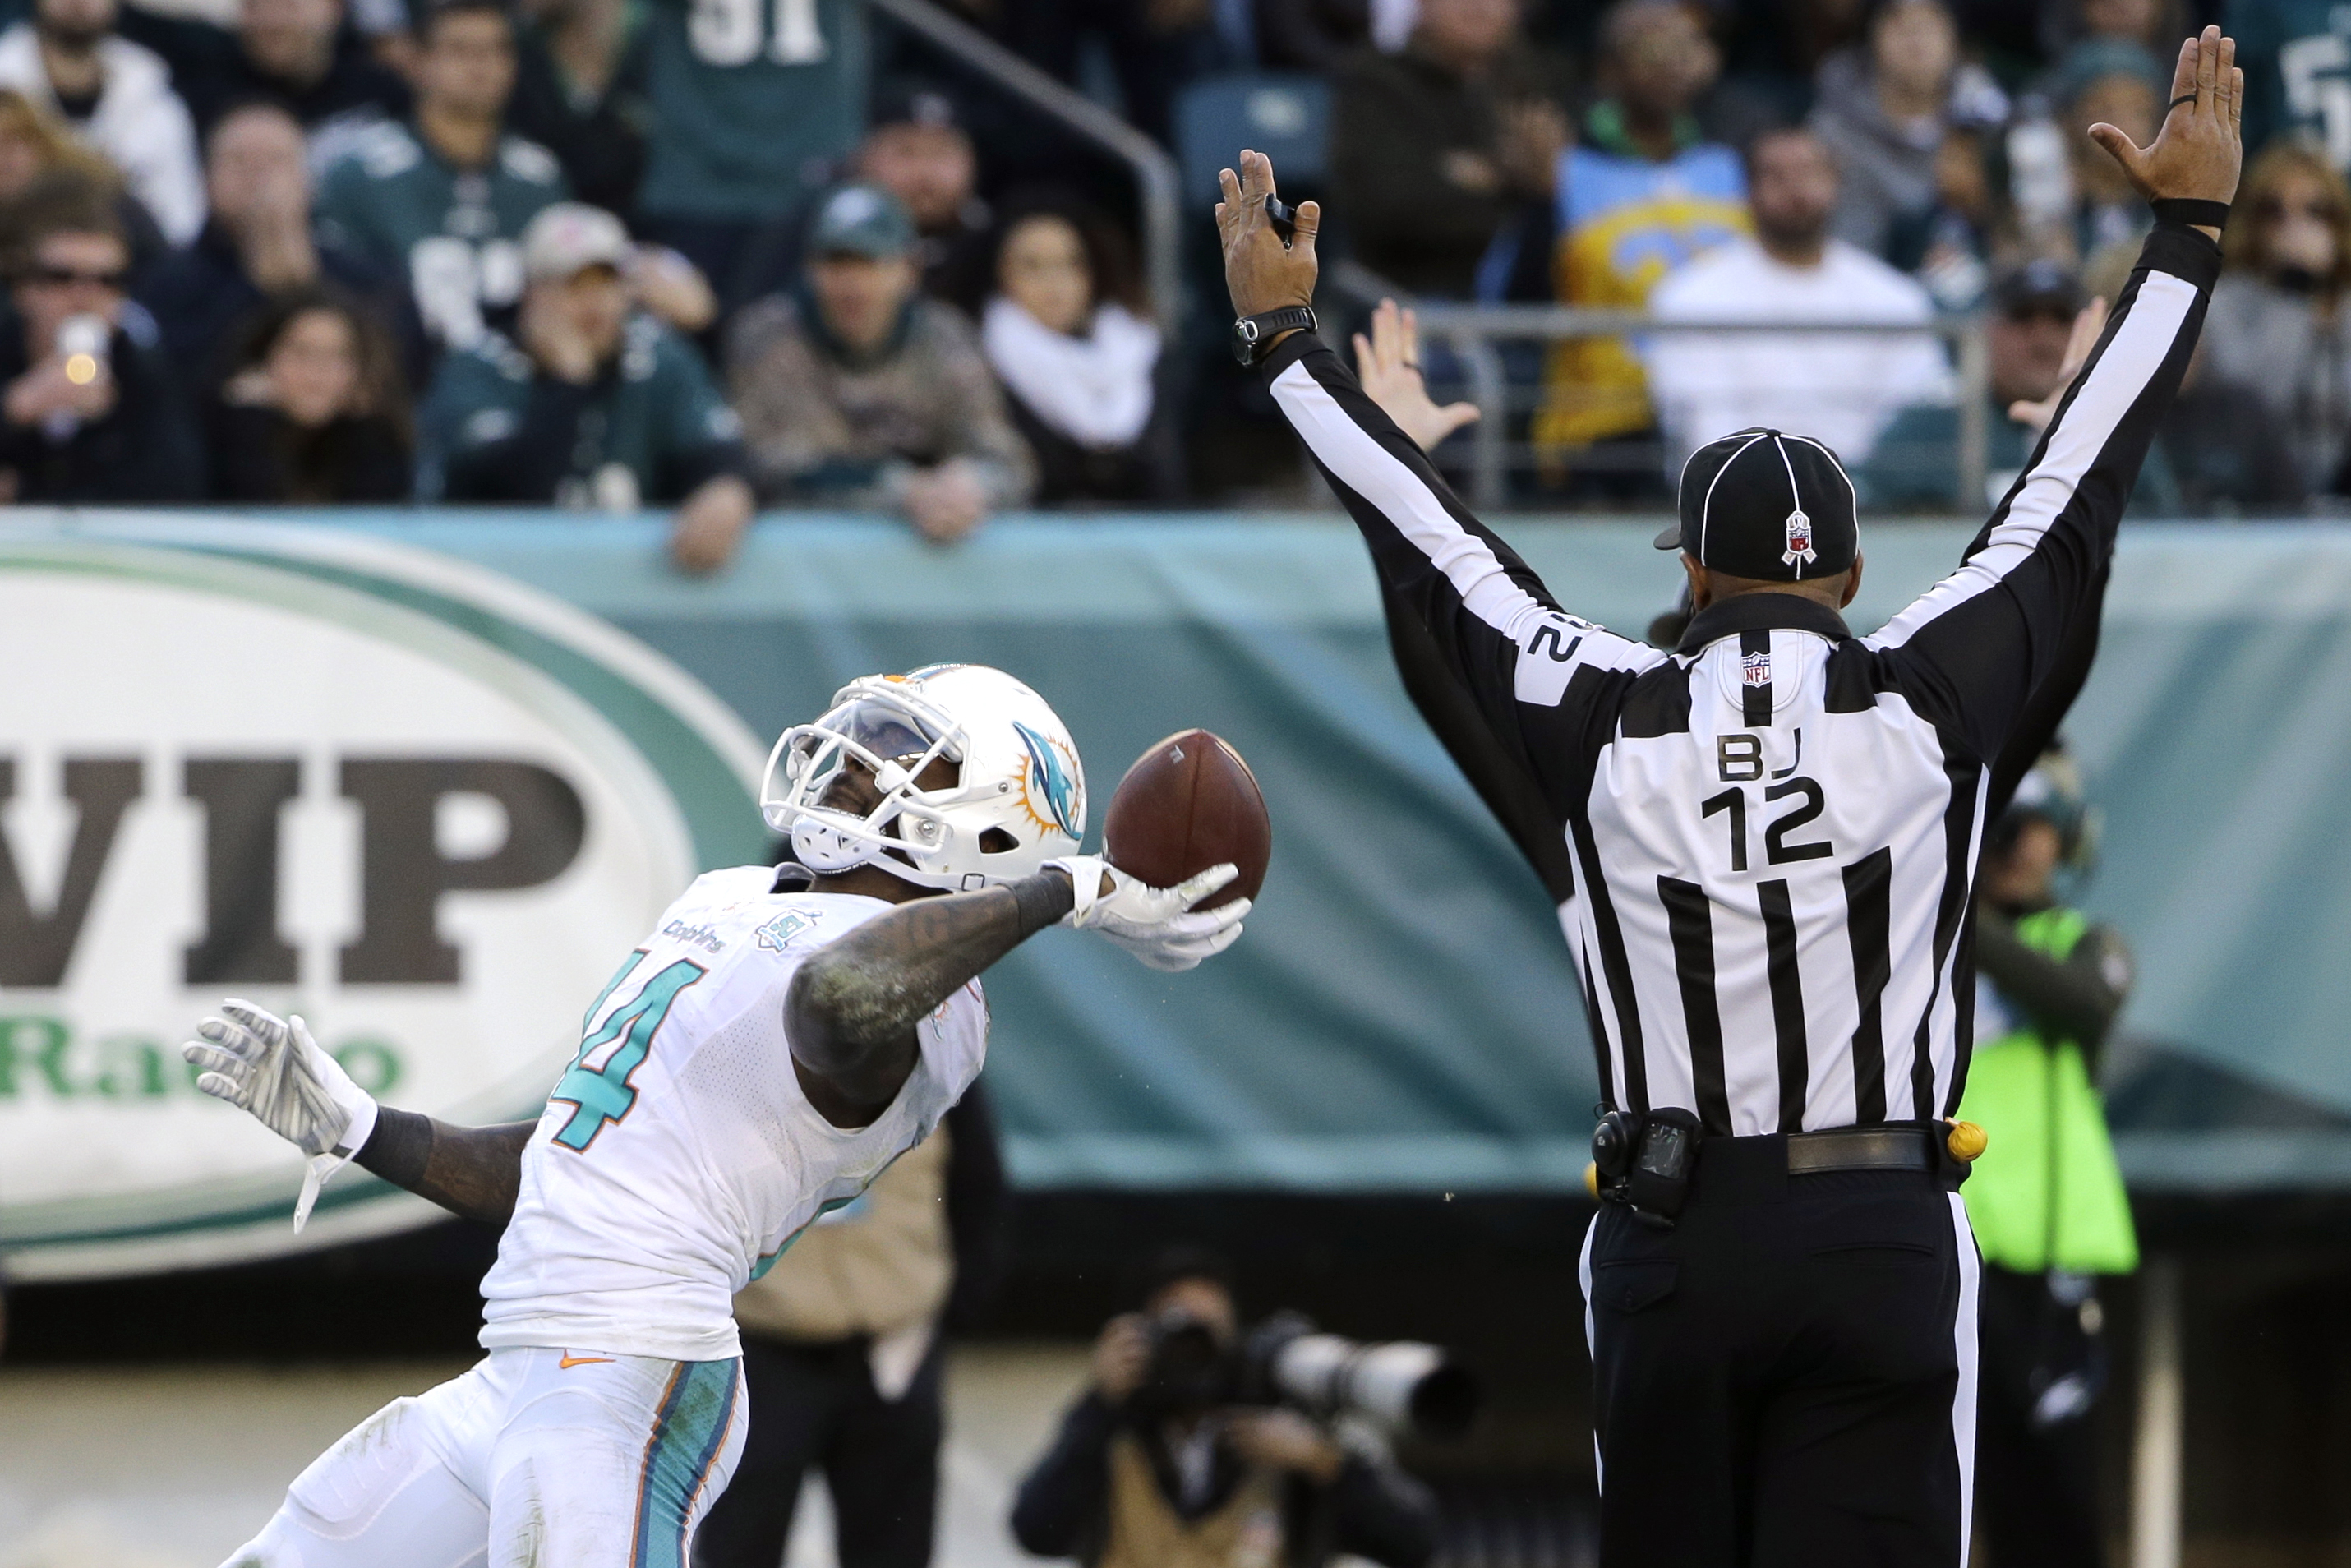 Miami Dolphins' Jarvis Landry celebrates after scoring a touchdown during the second half of an NFL football game against the Philadelphia Eagles, Sunday, Nov. 15, 2015, in Philadelphia. (AP Photo/Matt Rourke)